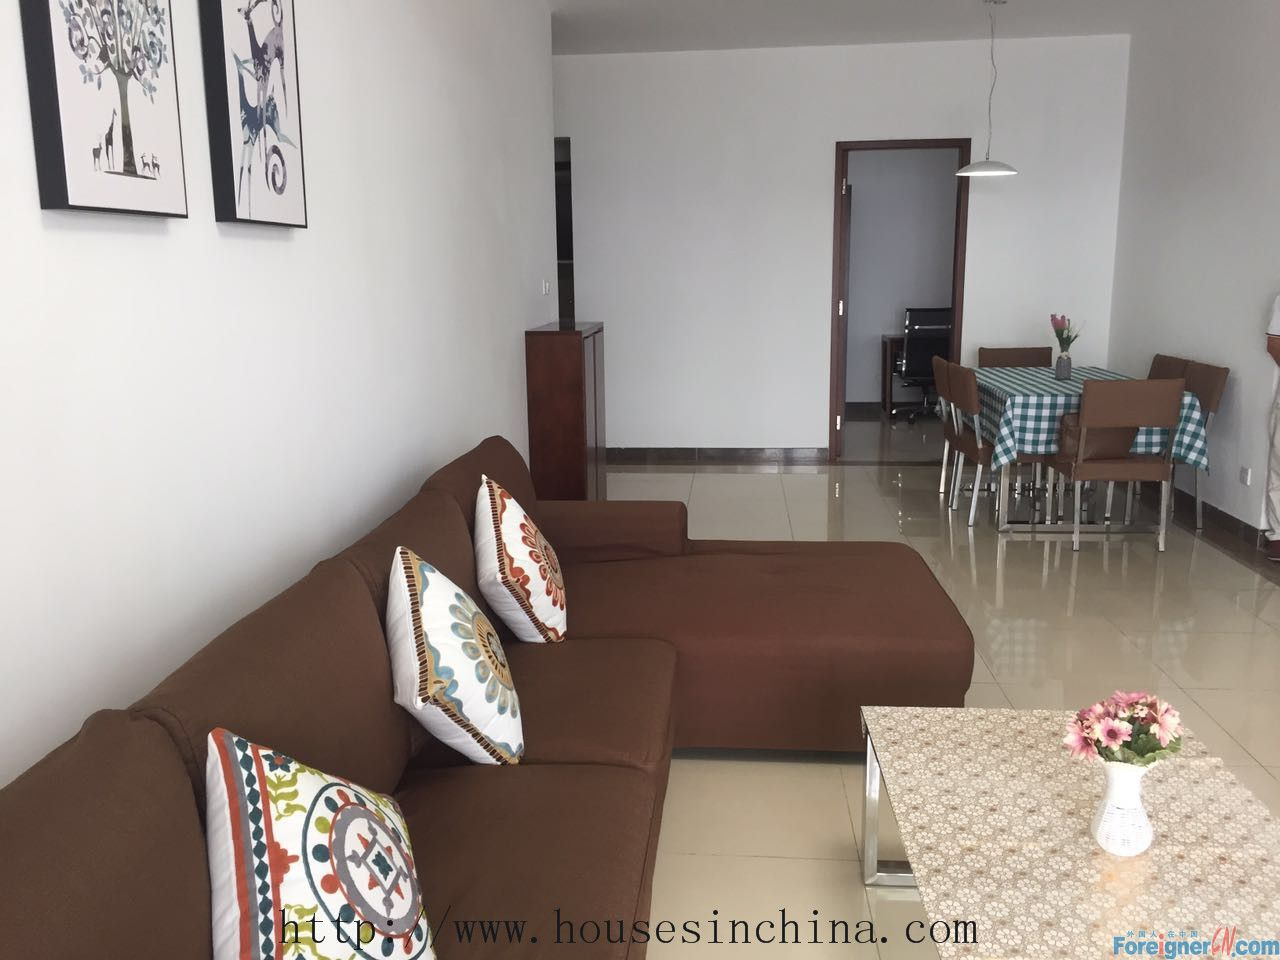 Lingfeng Garden Apartment-2Br, Hotel-style management, clean and simple, facing south, 5mins walk to line5 liede metro.RMB8500 per month including tax fee